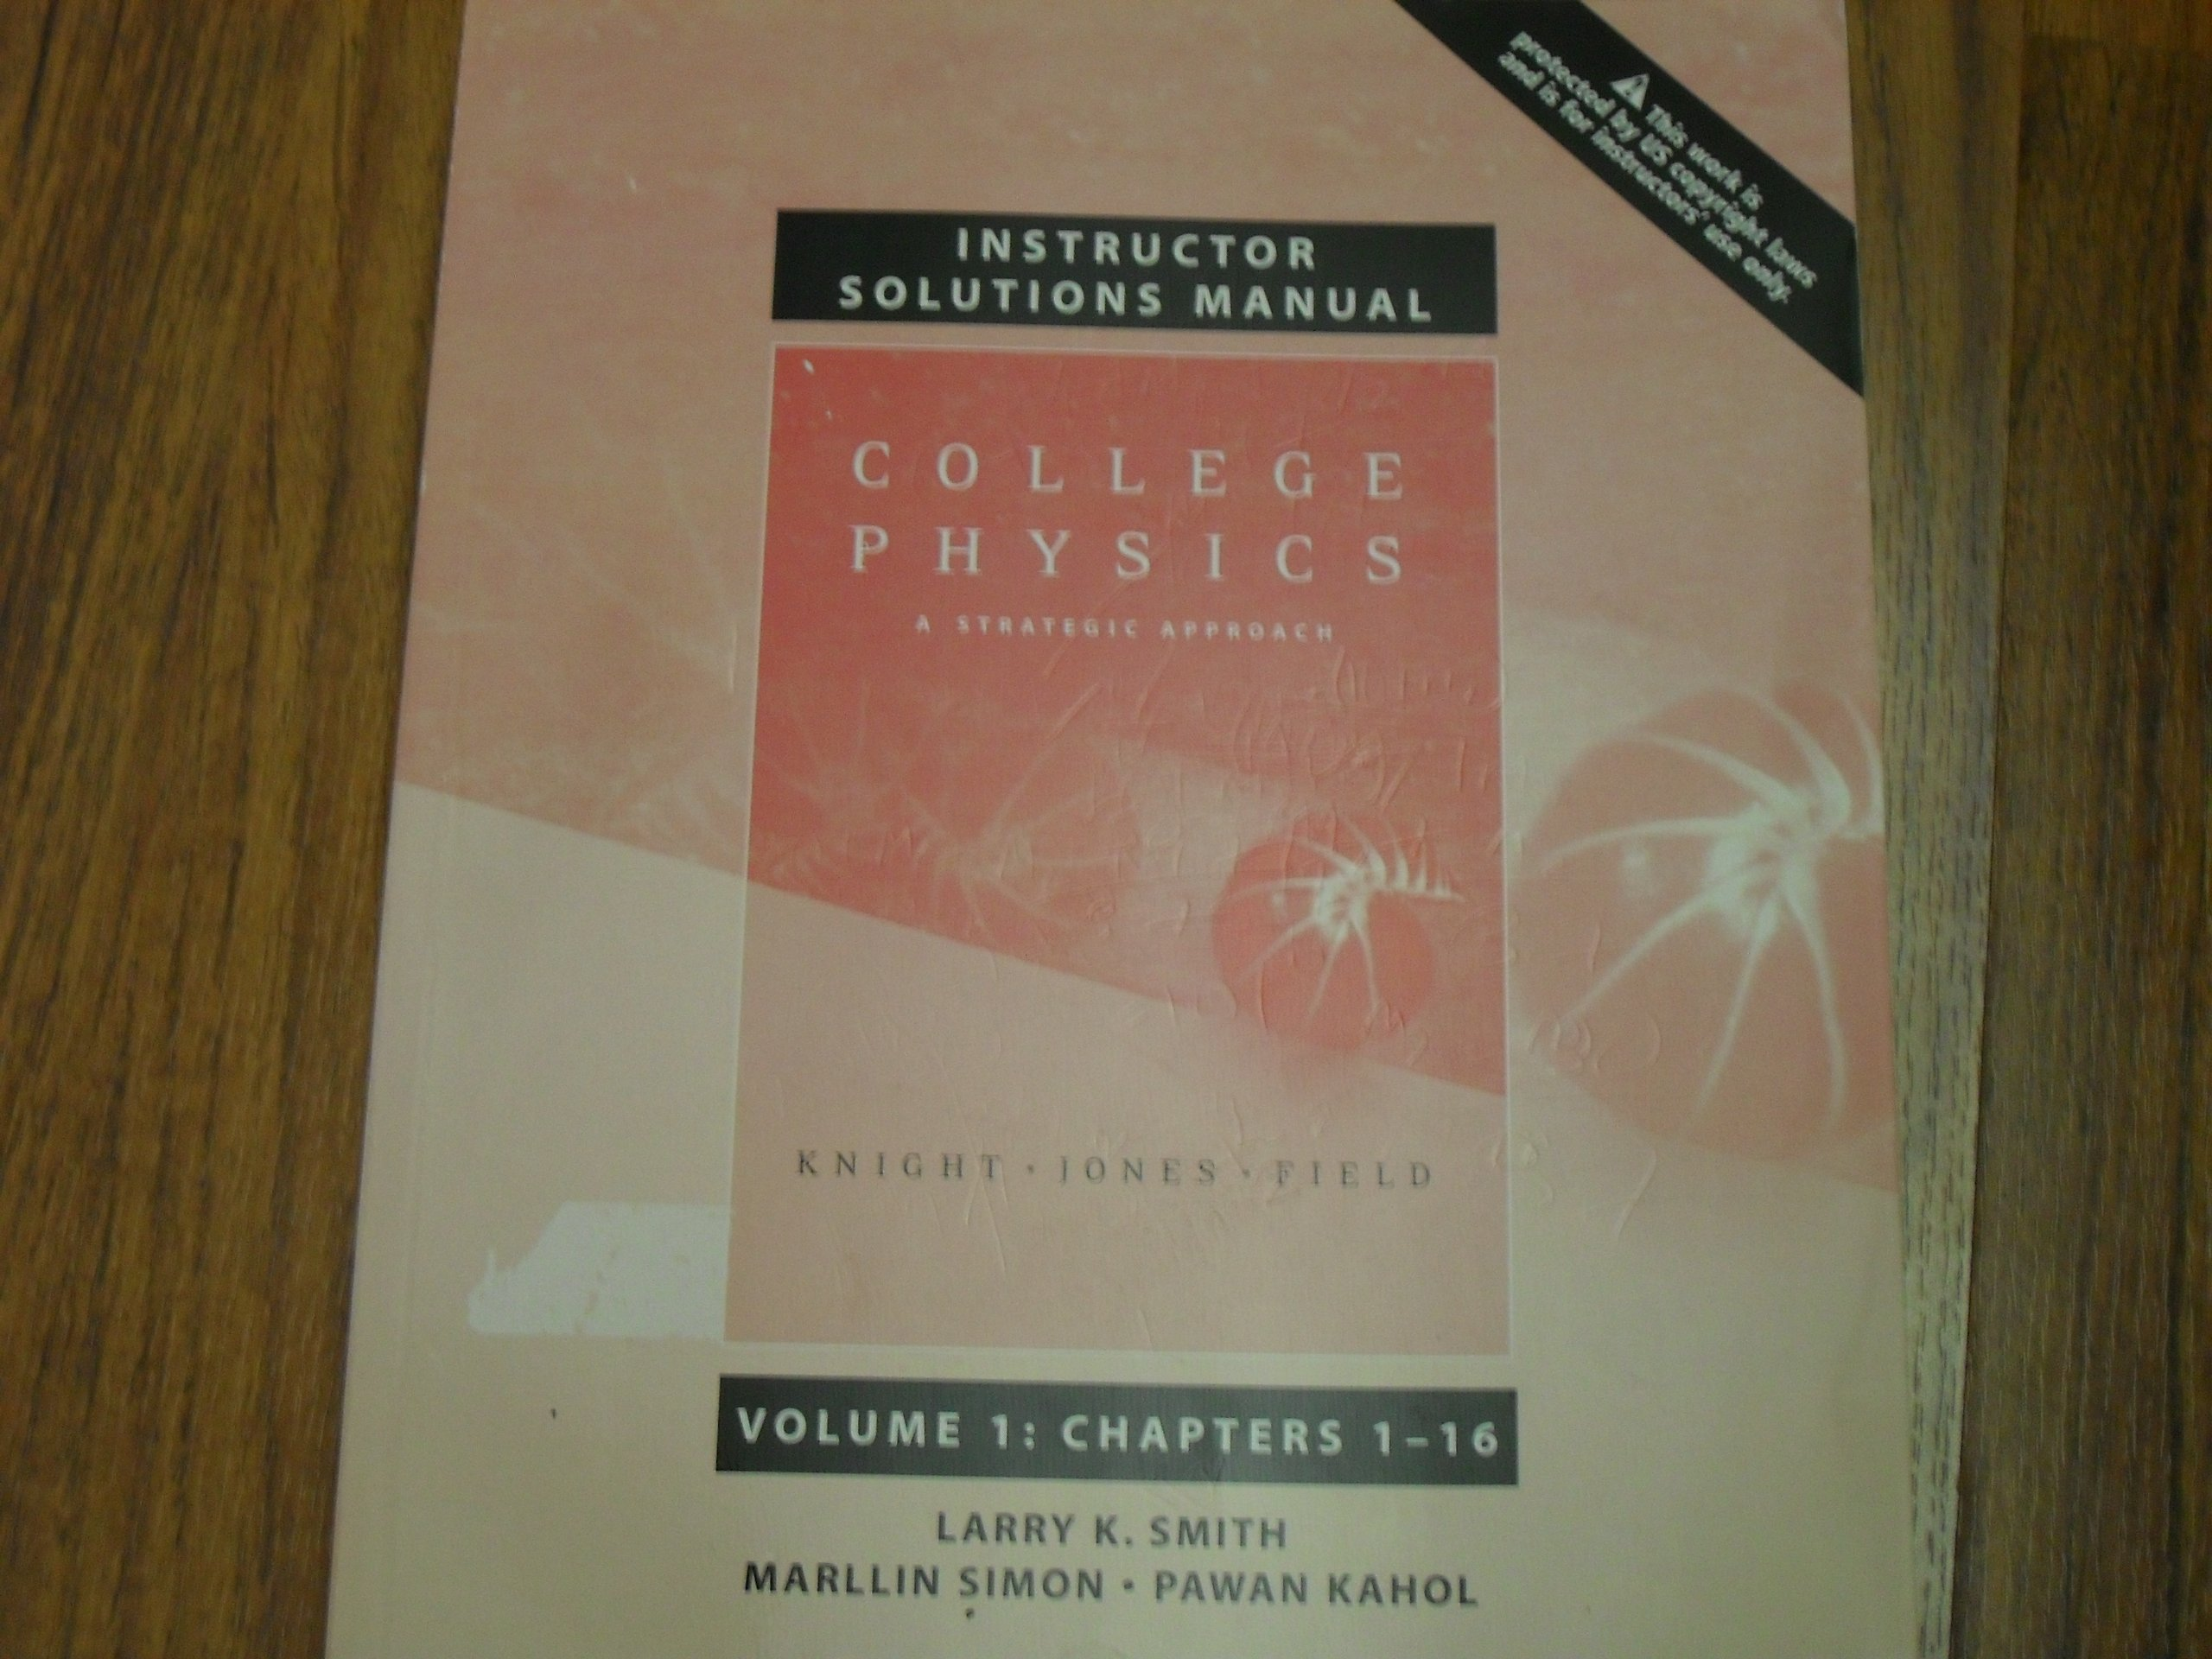 College Physics Instructor's Solution Manual Volume 1 Chapters 1-16: Jones,  Fiend Knight: 9780805304954: Amazon.com: Books